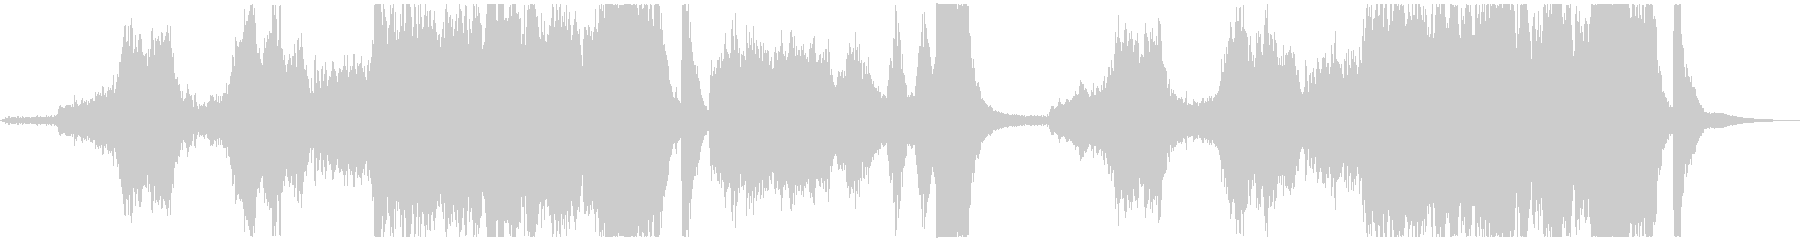 Mussorgsky's Night on Bald Mountain_Intro's unreproduced waveform